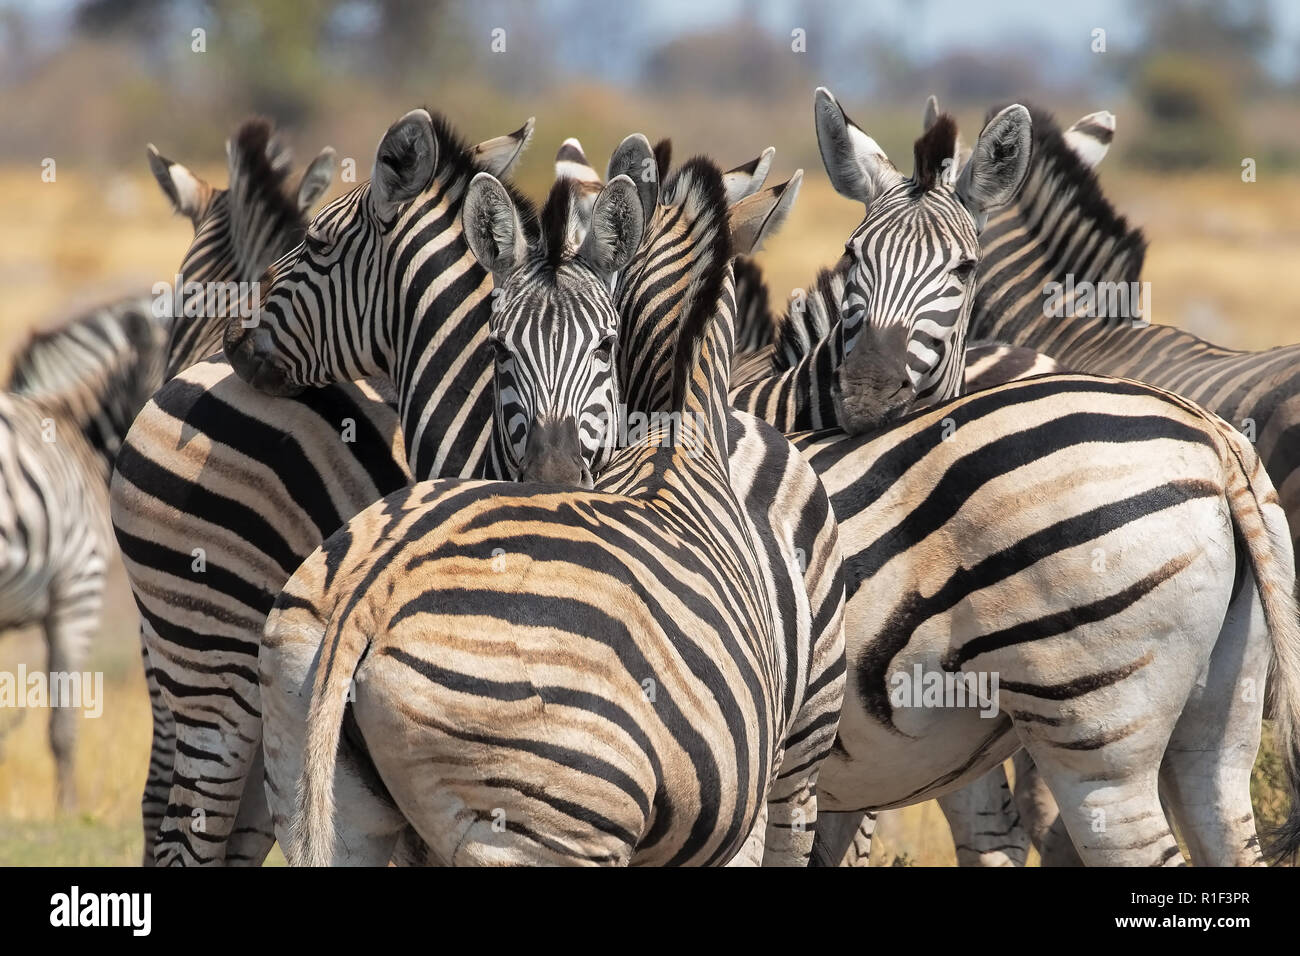 Plain zebra - Stock Image